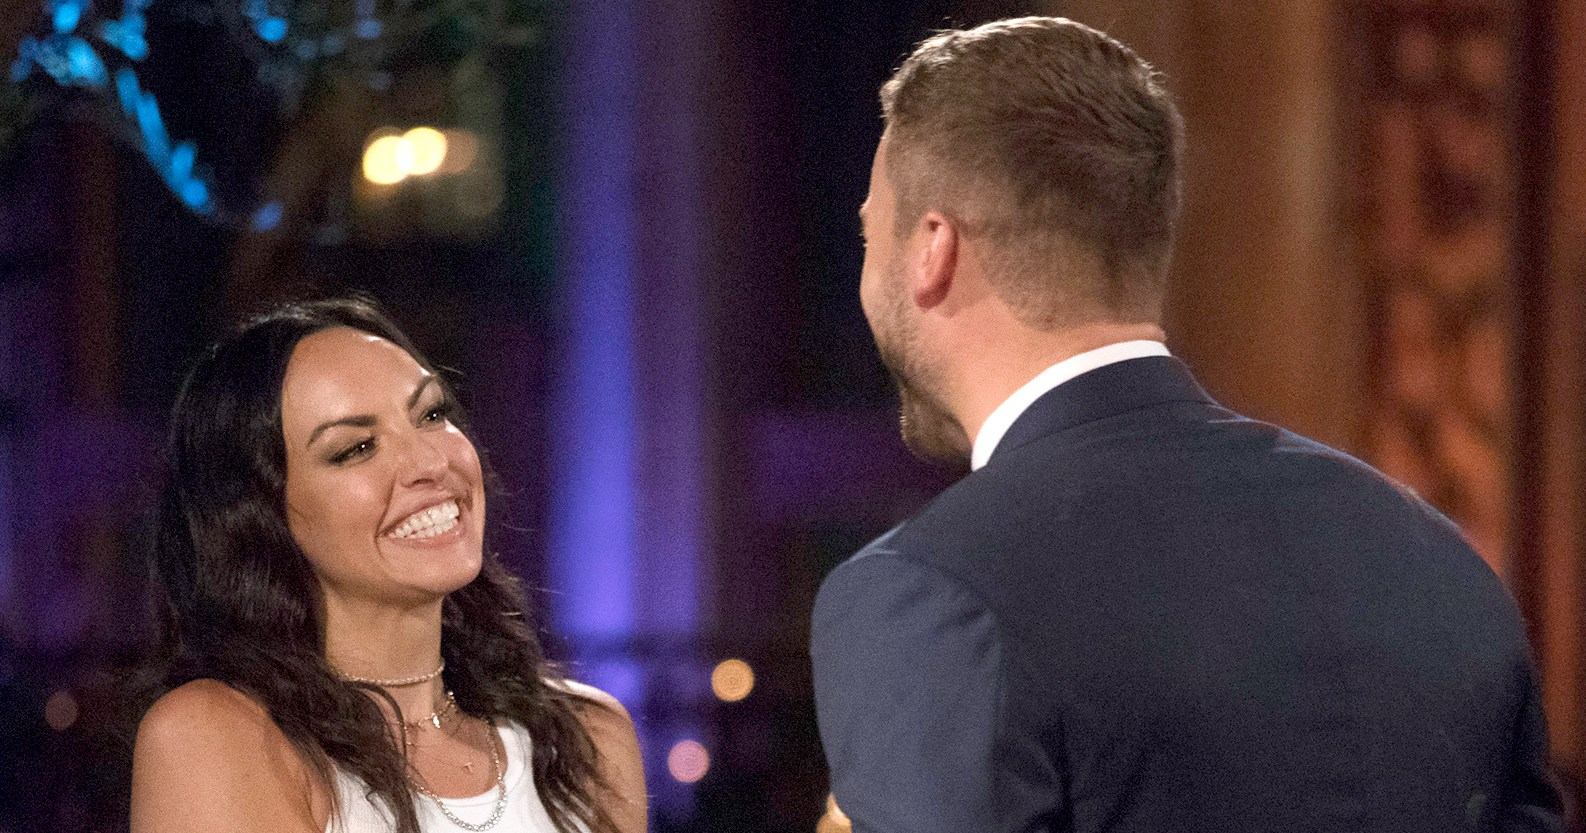 Colton's 'Bachelor' Contestant Tracy Slammed Series, Posted Offensive Tweets